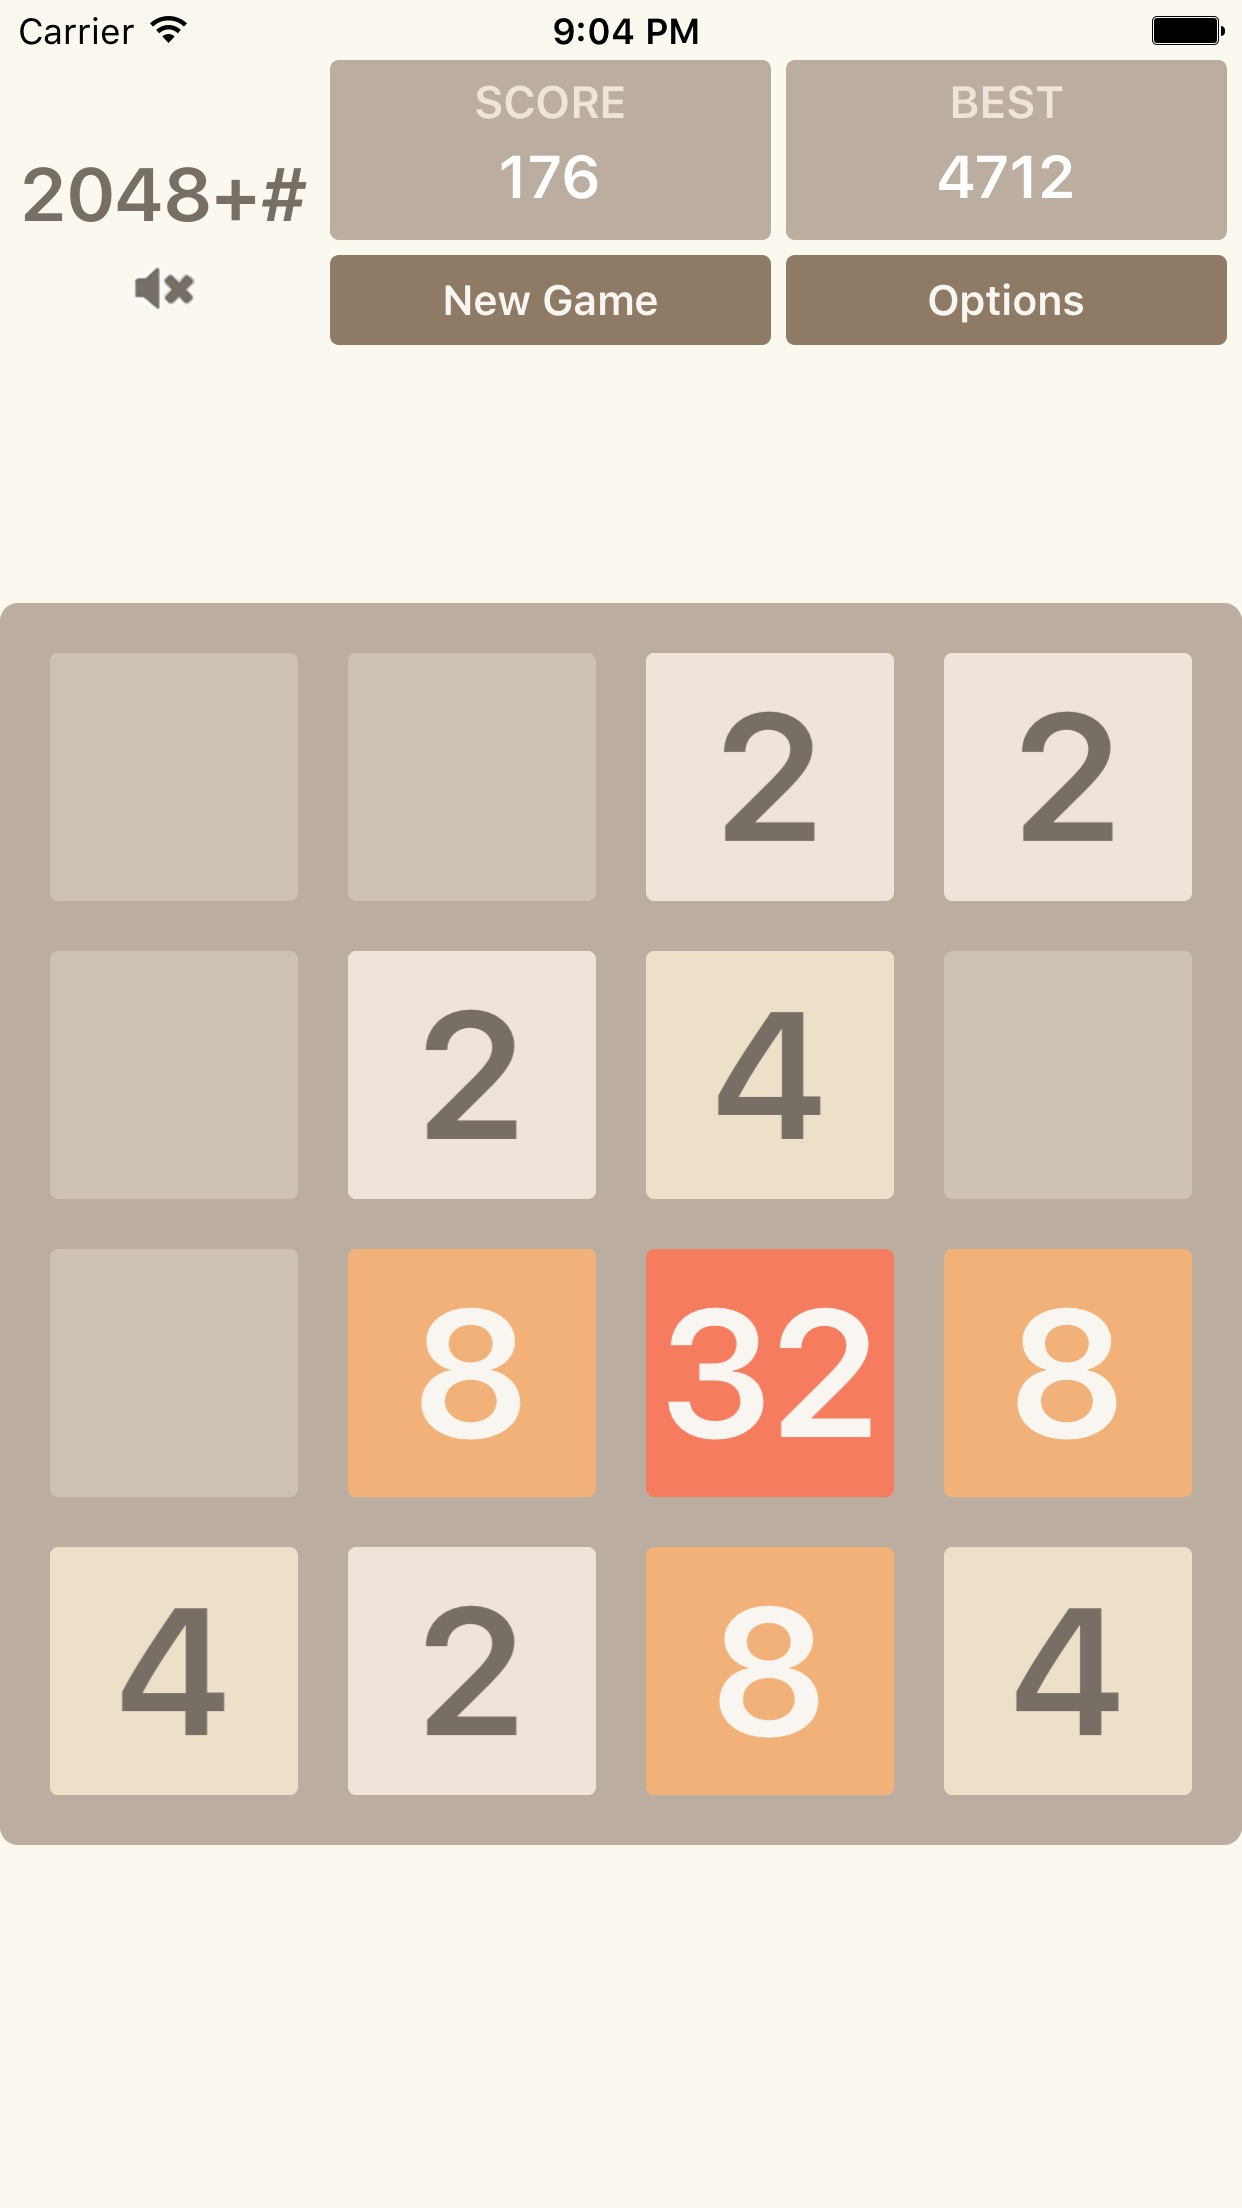 2048+# Screenshot